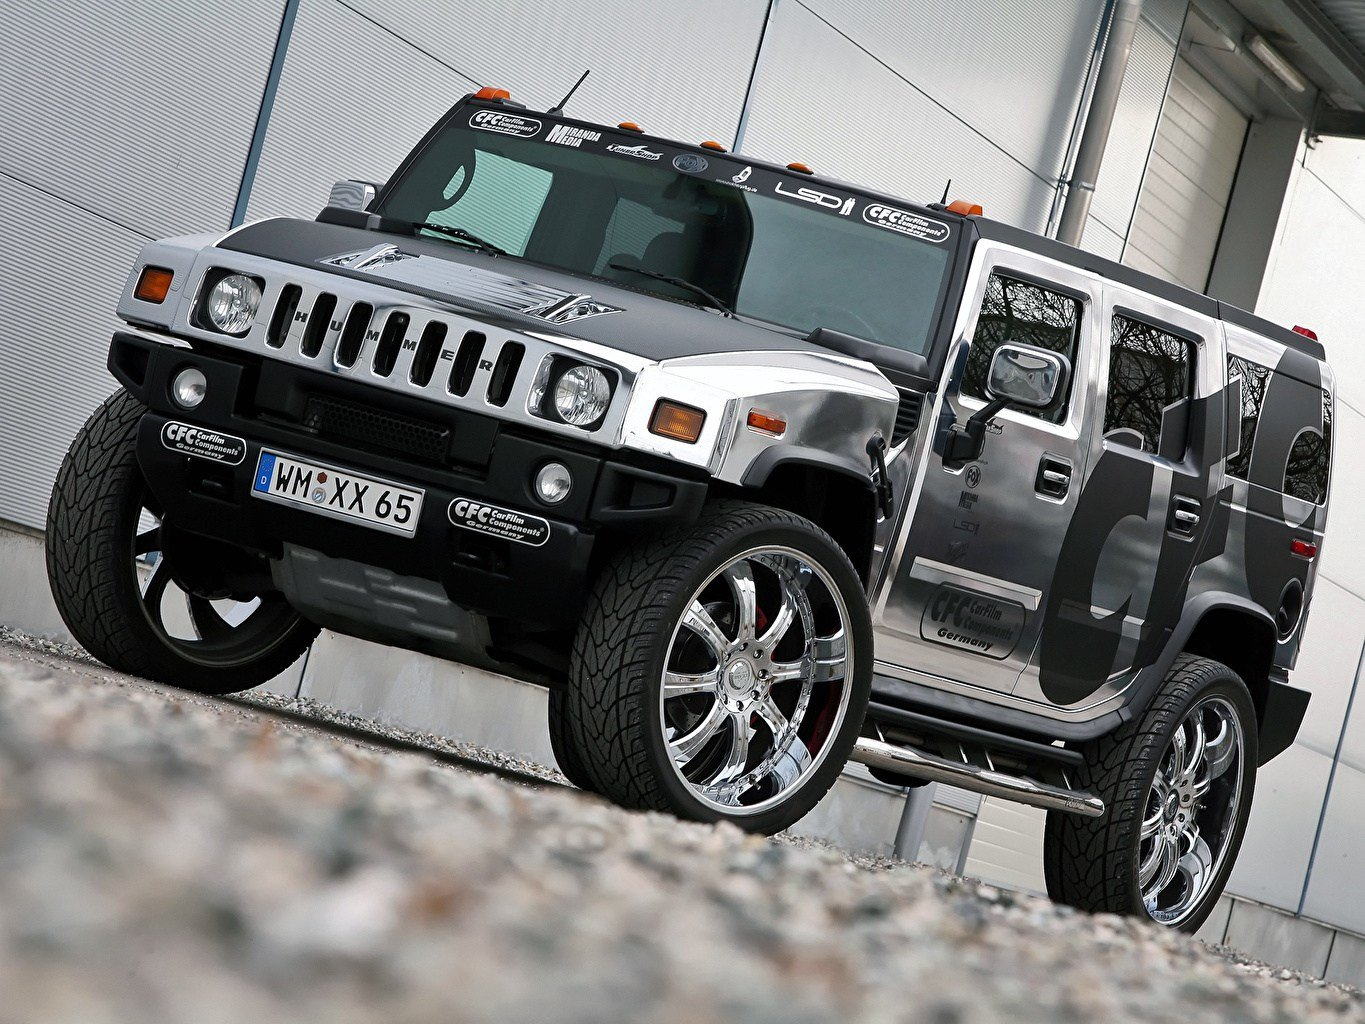 Latest Picture Hummer Cars Free Download